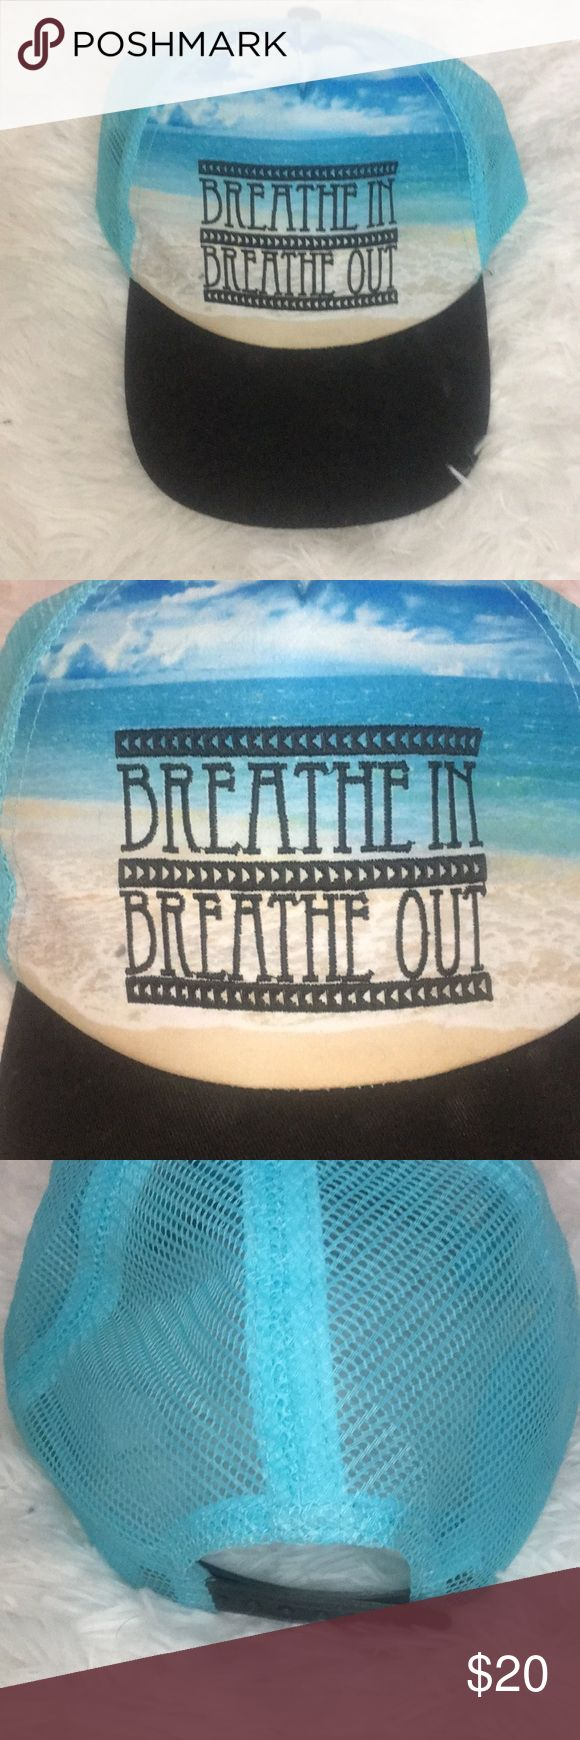 """Tumblr Hat Blue and black tumblr trucker styled hat It says """"Breathe in Breathe out"""" Has depiction of a beach in the background of the words Brand new hat never worn In perfect condition Accessories Hats"""